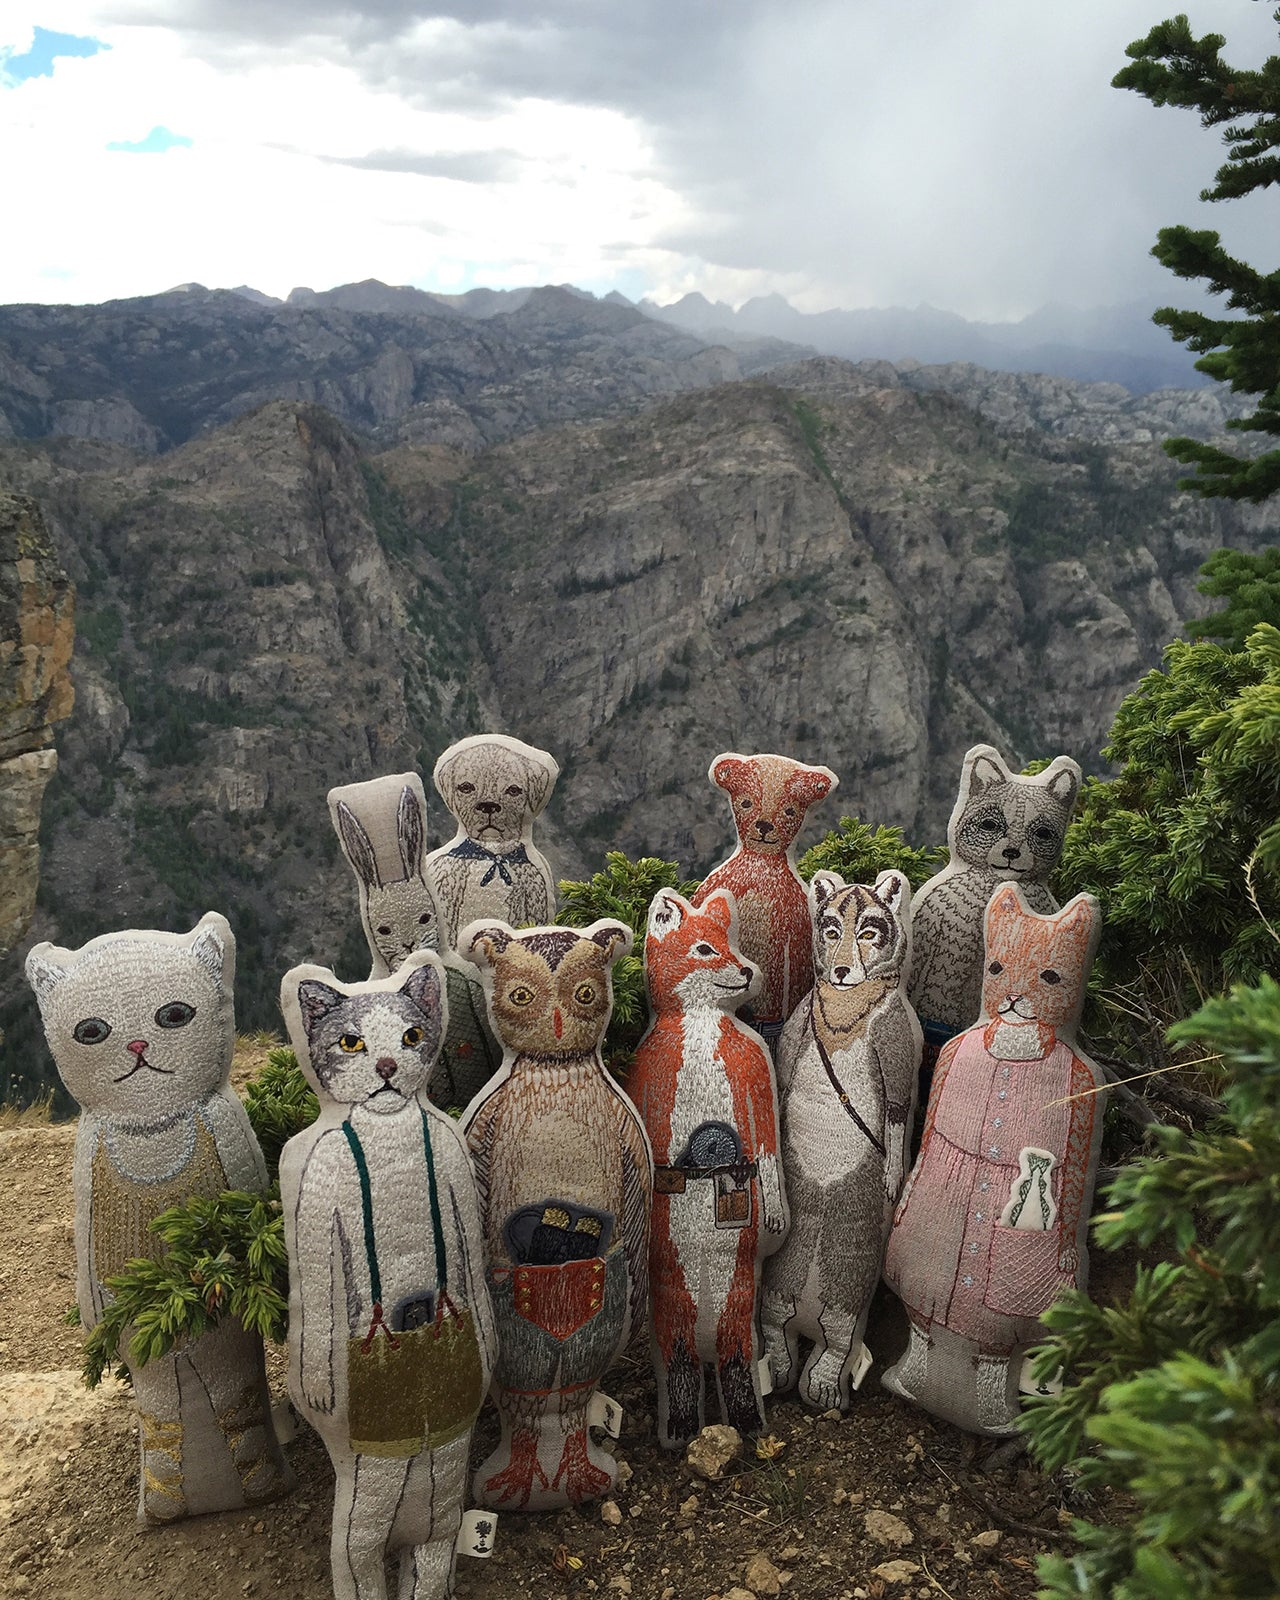 Coral & Tusk in Wyoming, Pocket Dolls at Sacred Rim